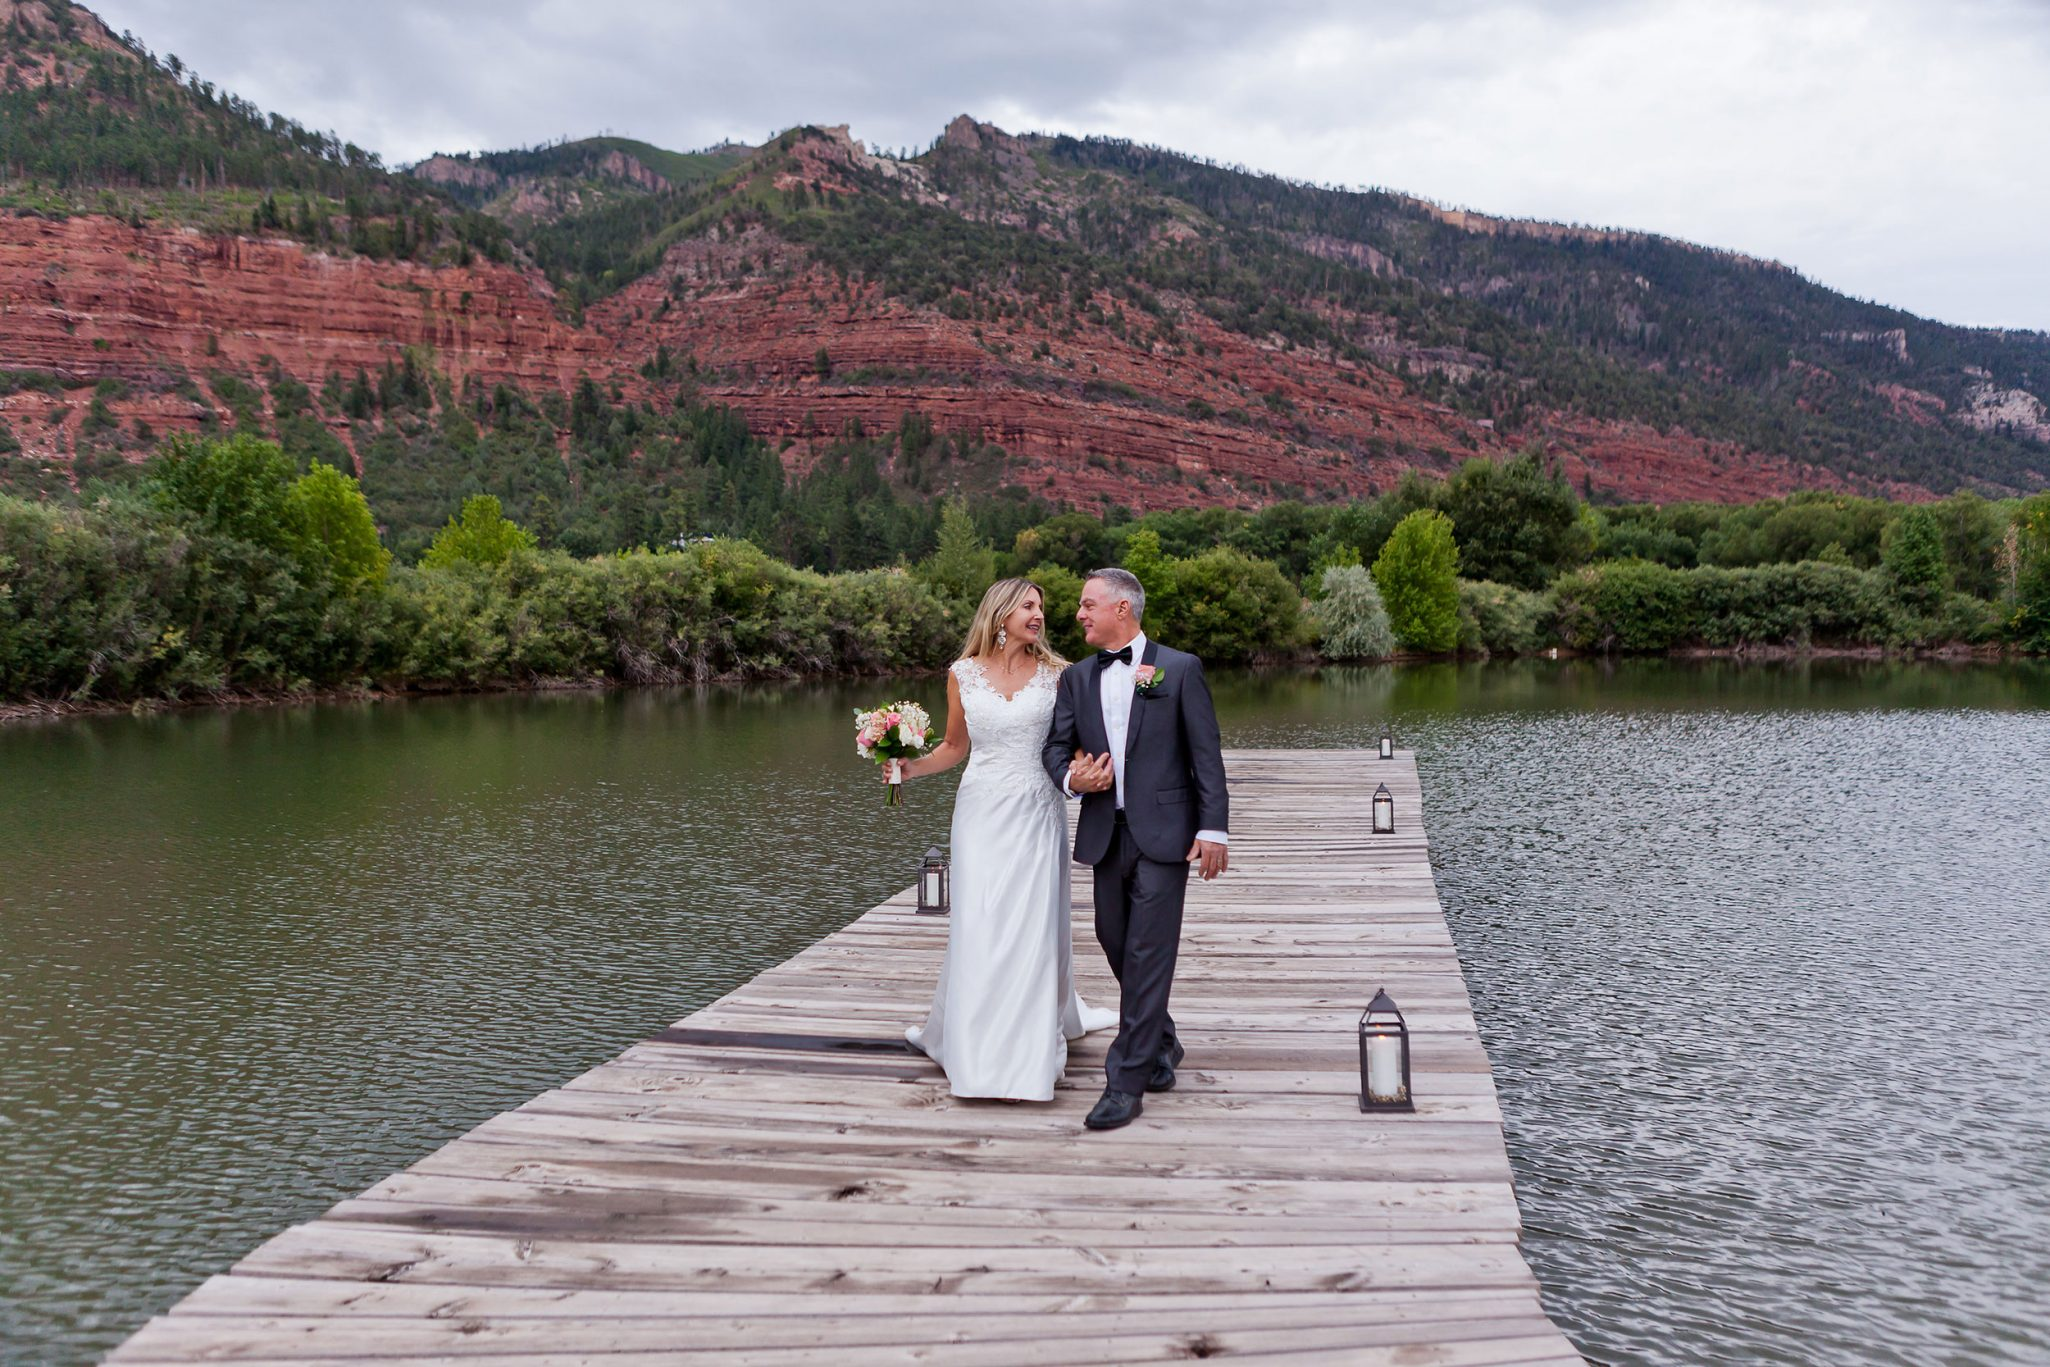 The Lake at River Bend Ranch in Durango, Colorado